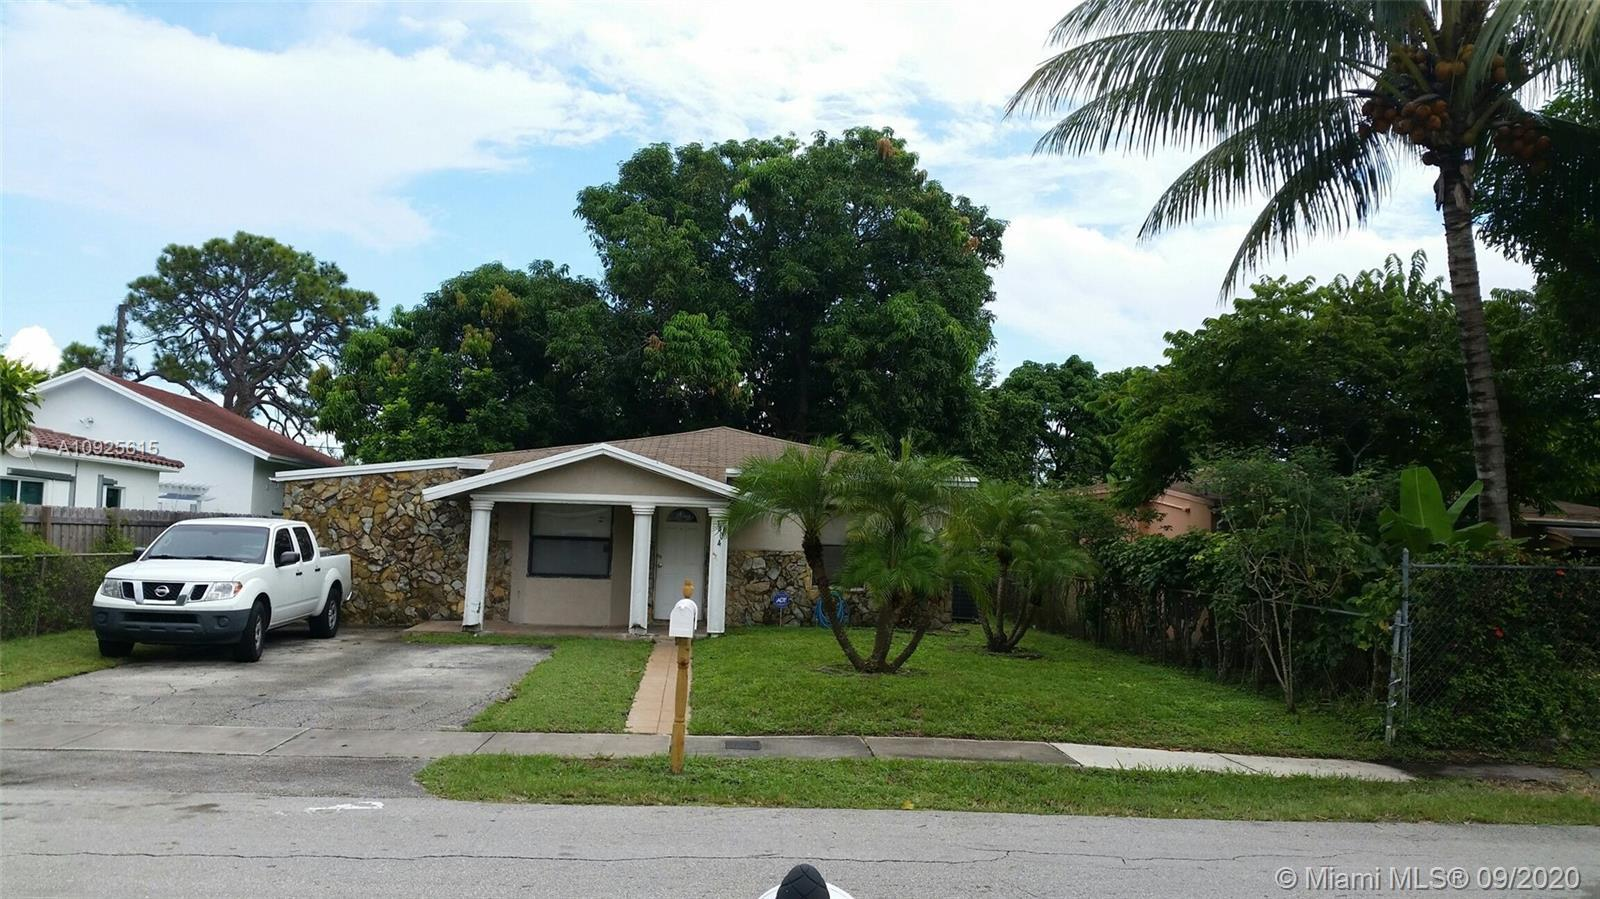 Beautiful 3/2 house in a desired area. Close to I-95, Home depot, Publix, downtown, the beach. A lot